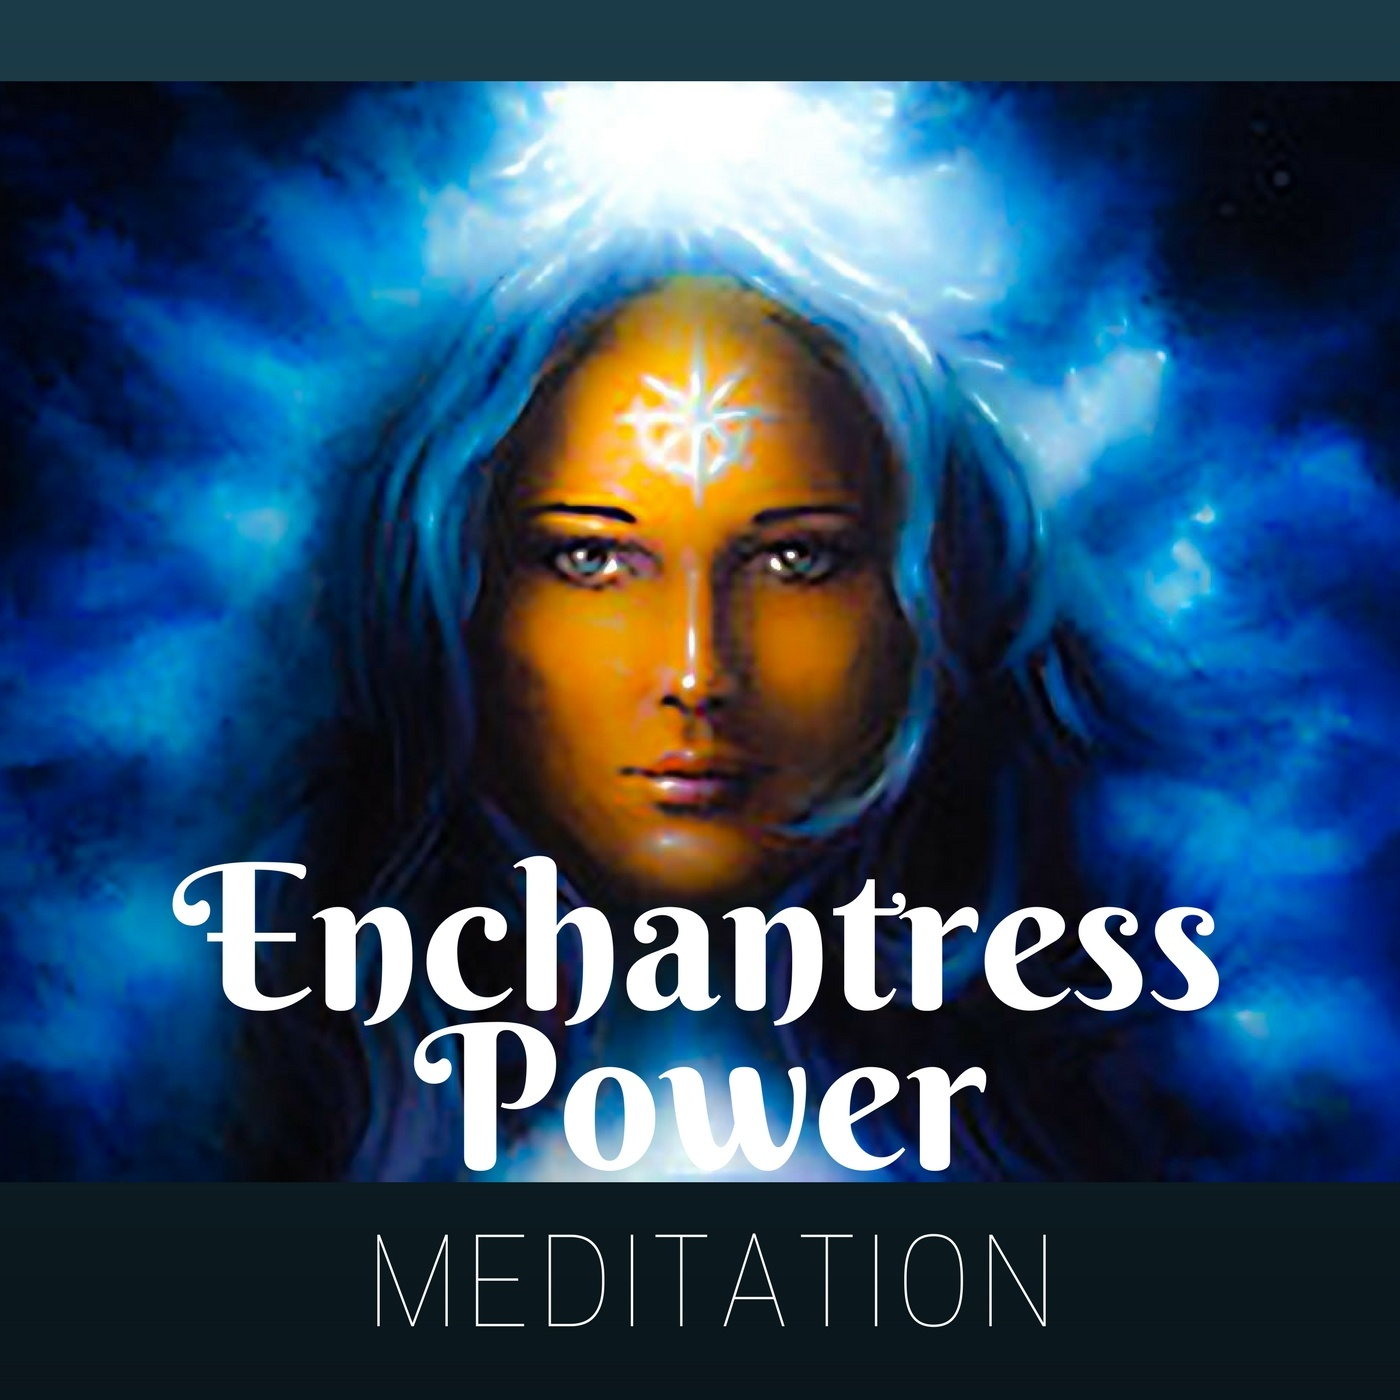 Enchantress Power Meditation